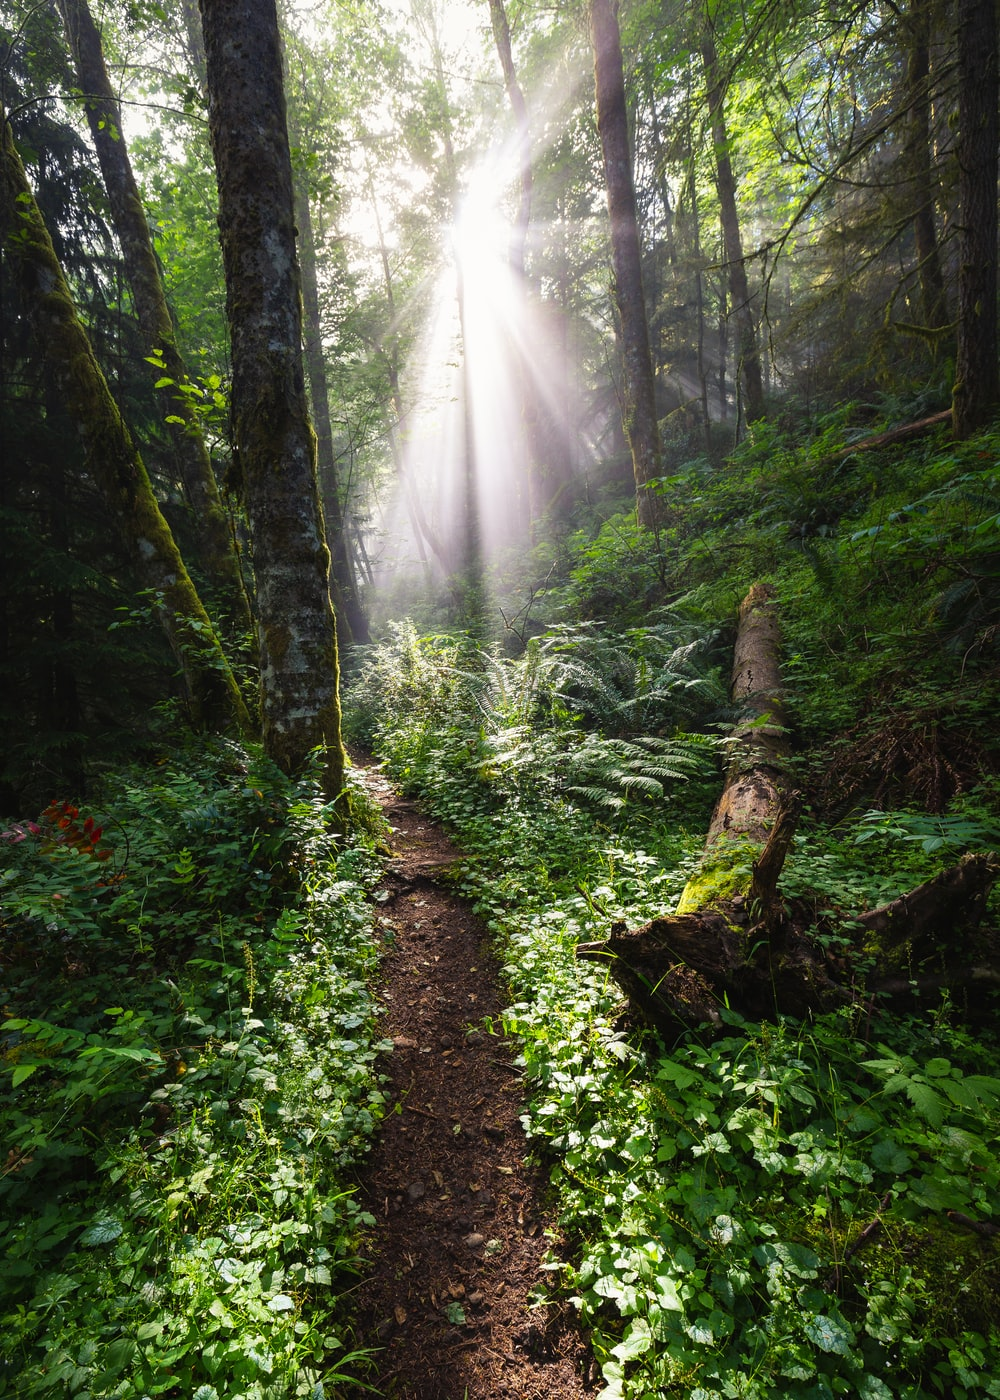 sun shining on forest